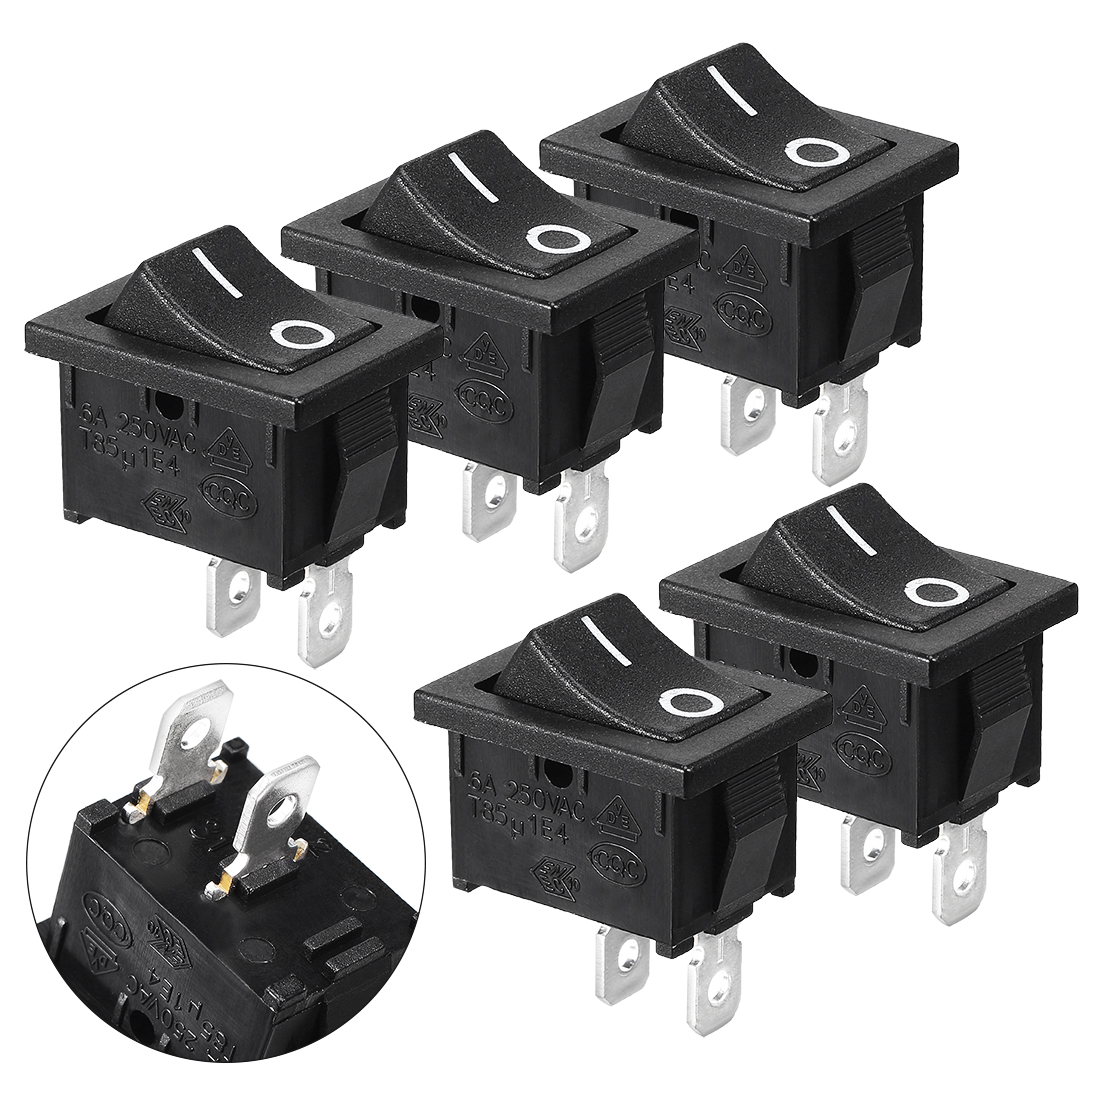 5 Pcs KCD1-101 SPST ON/OFF AC 250V/6A 125V/10A Power Rocker Switches Black